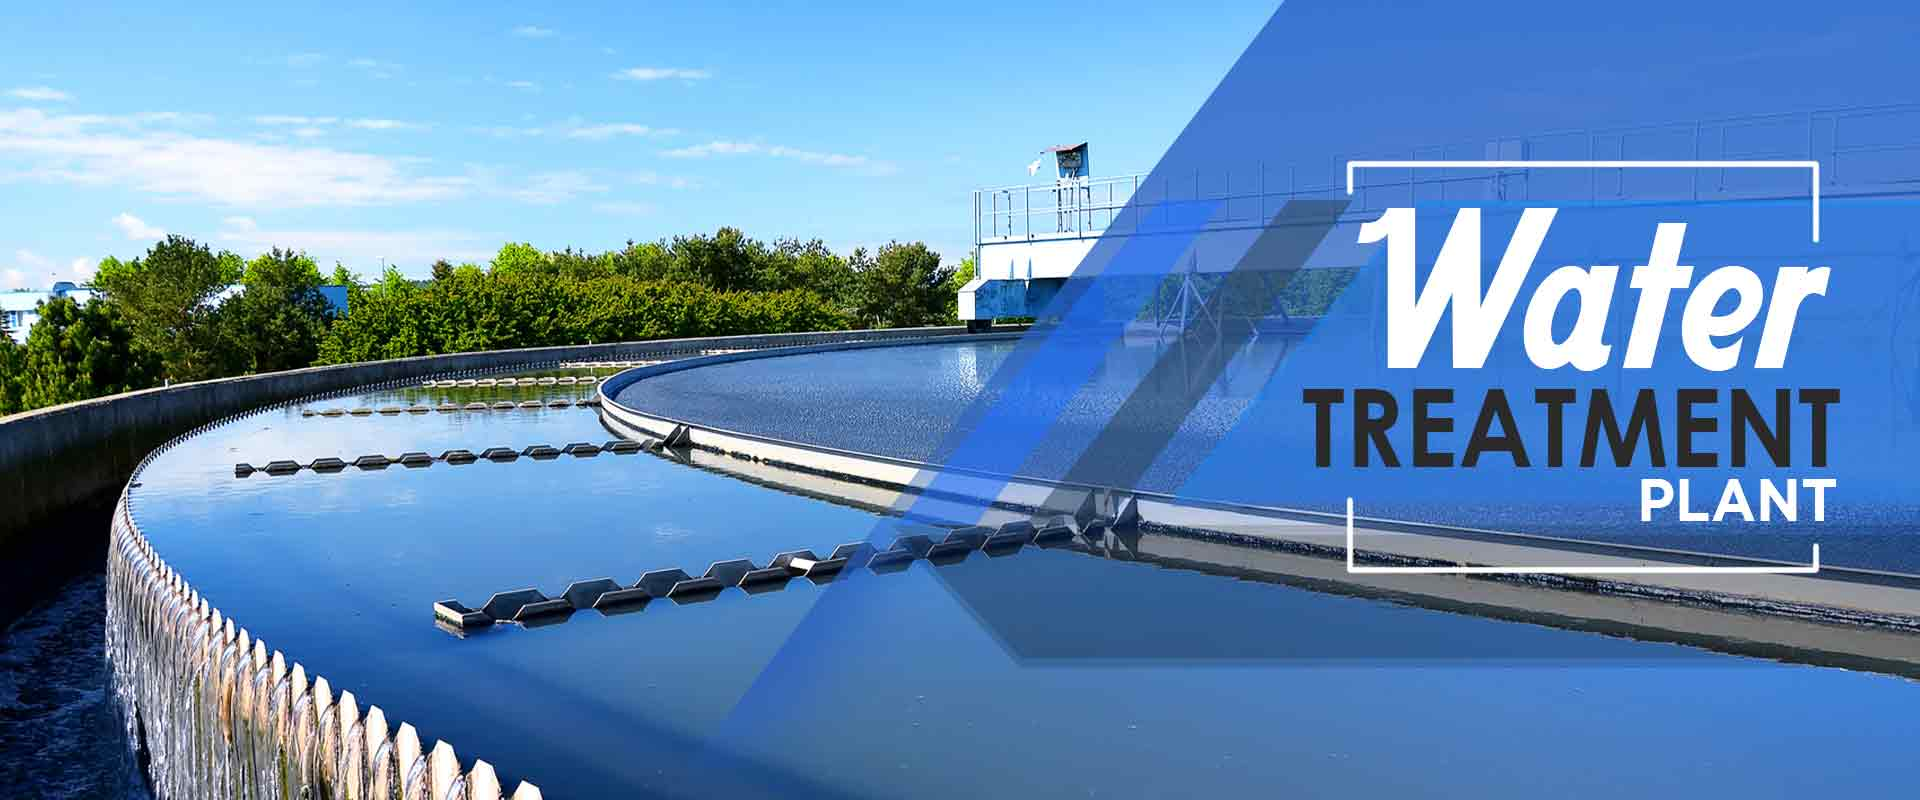 Water Treatment Plant Manufacturers In San Diego